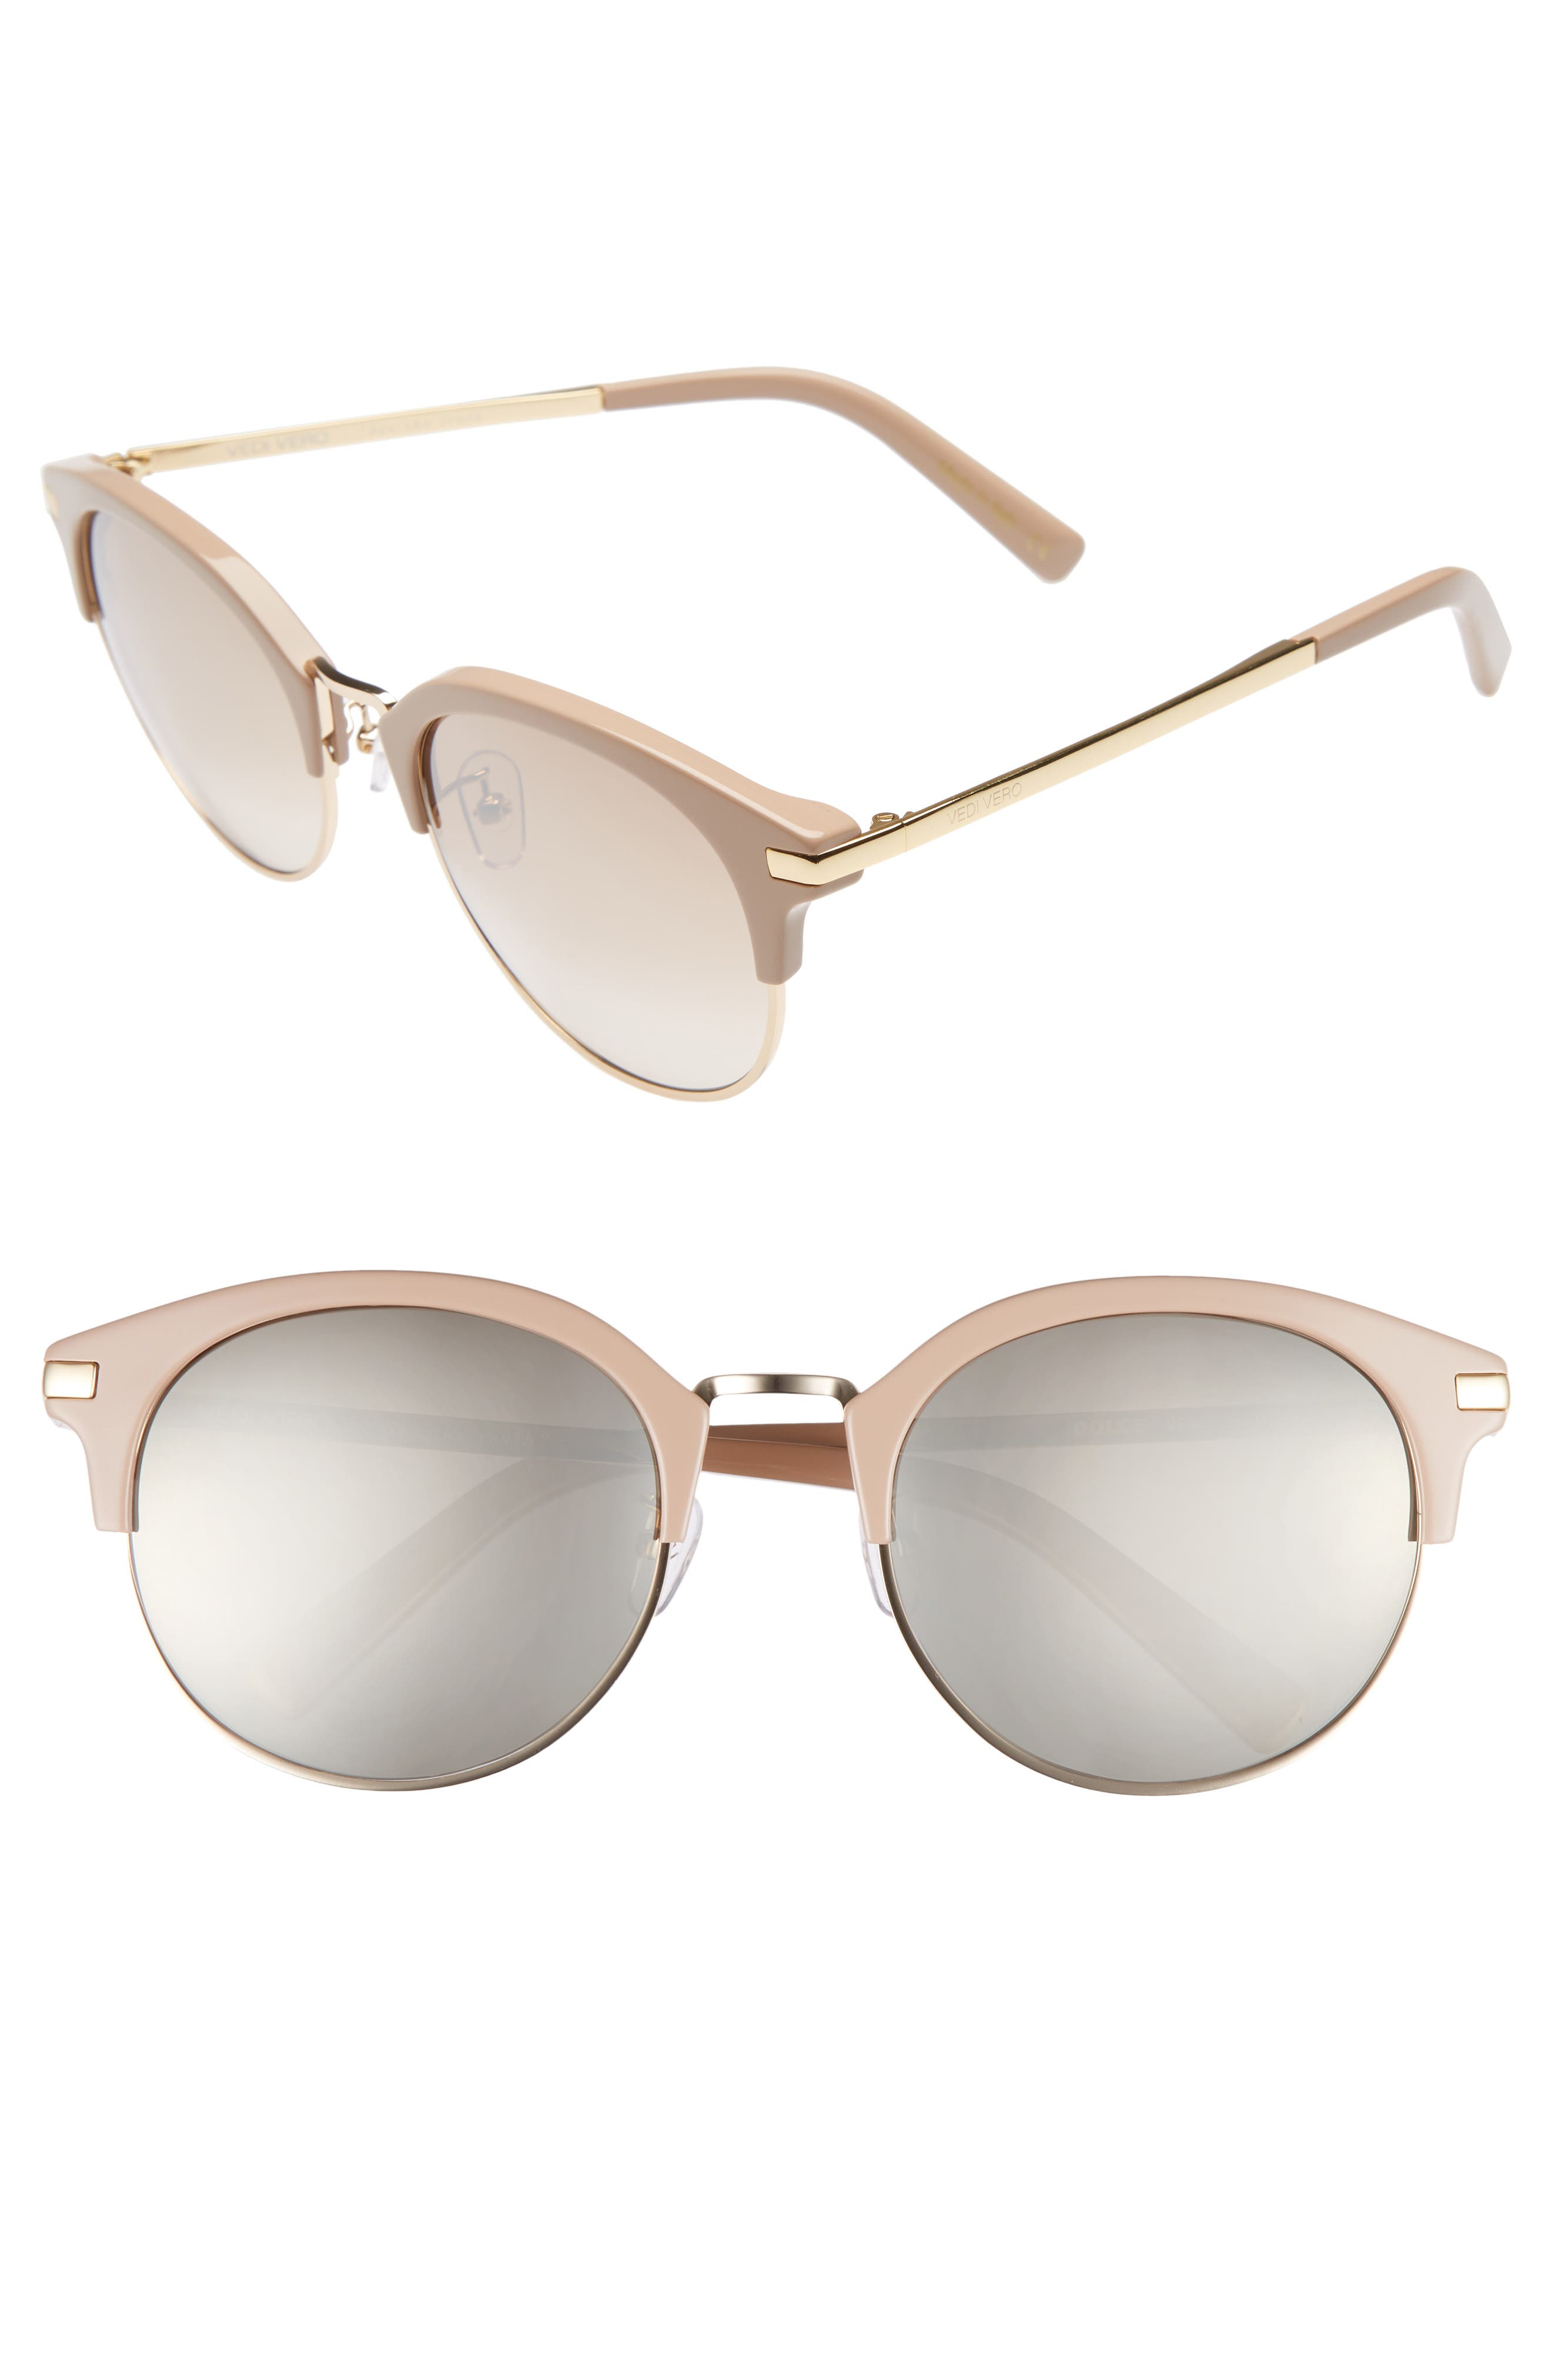 56mm Round Sunglasses,                             Main thumbnail 1, color,                             GOLD AND BEIGE/GRADIENT BROWN